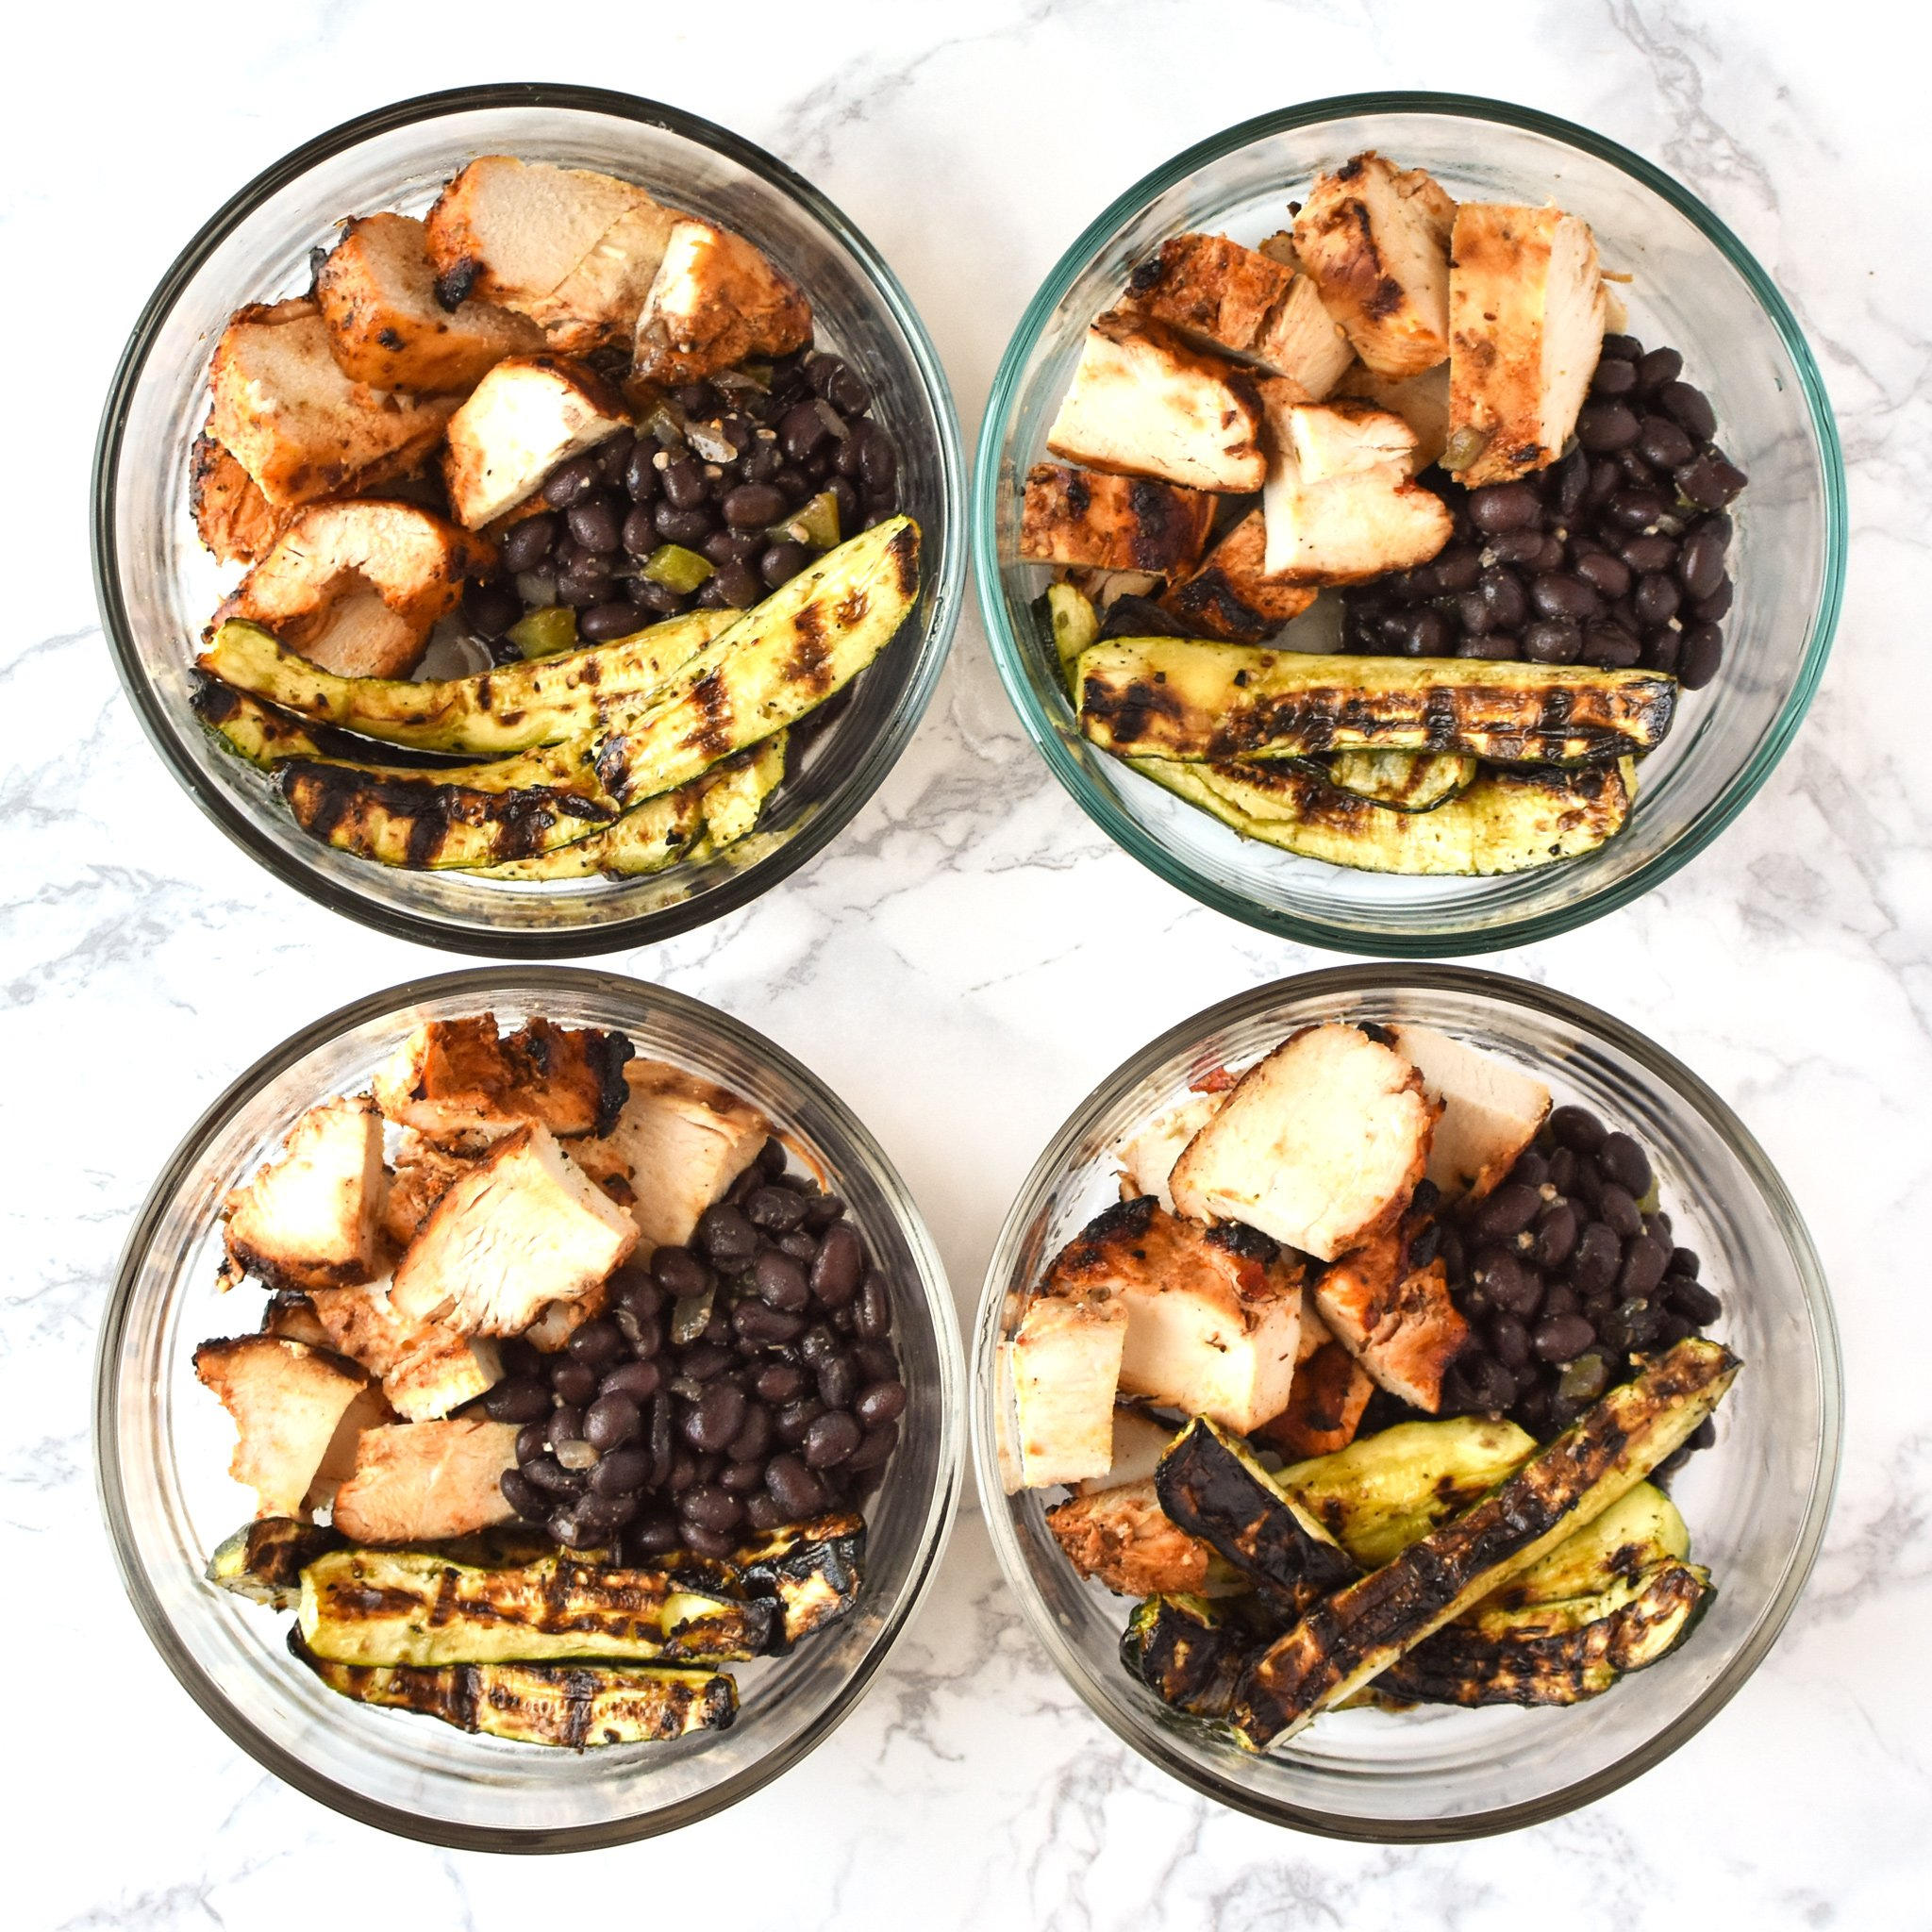 Meal Prep Chipotle Grilled Chicken With Seasoned Black Beans And